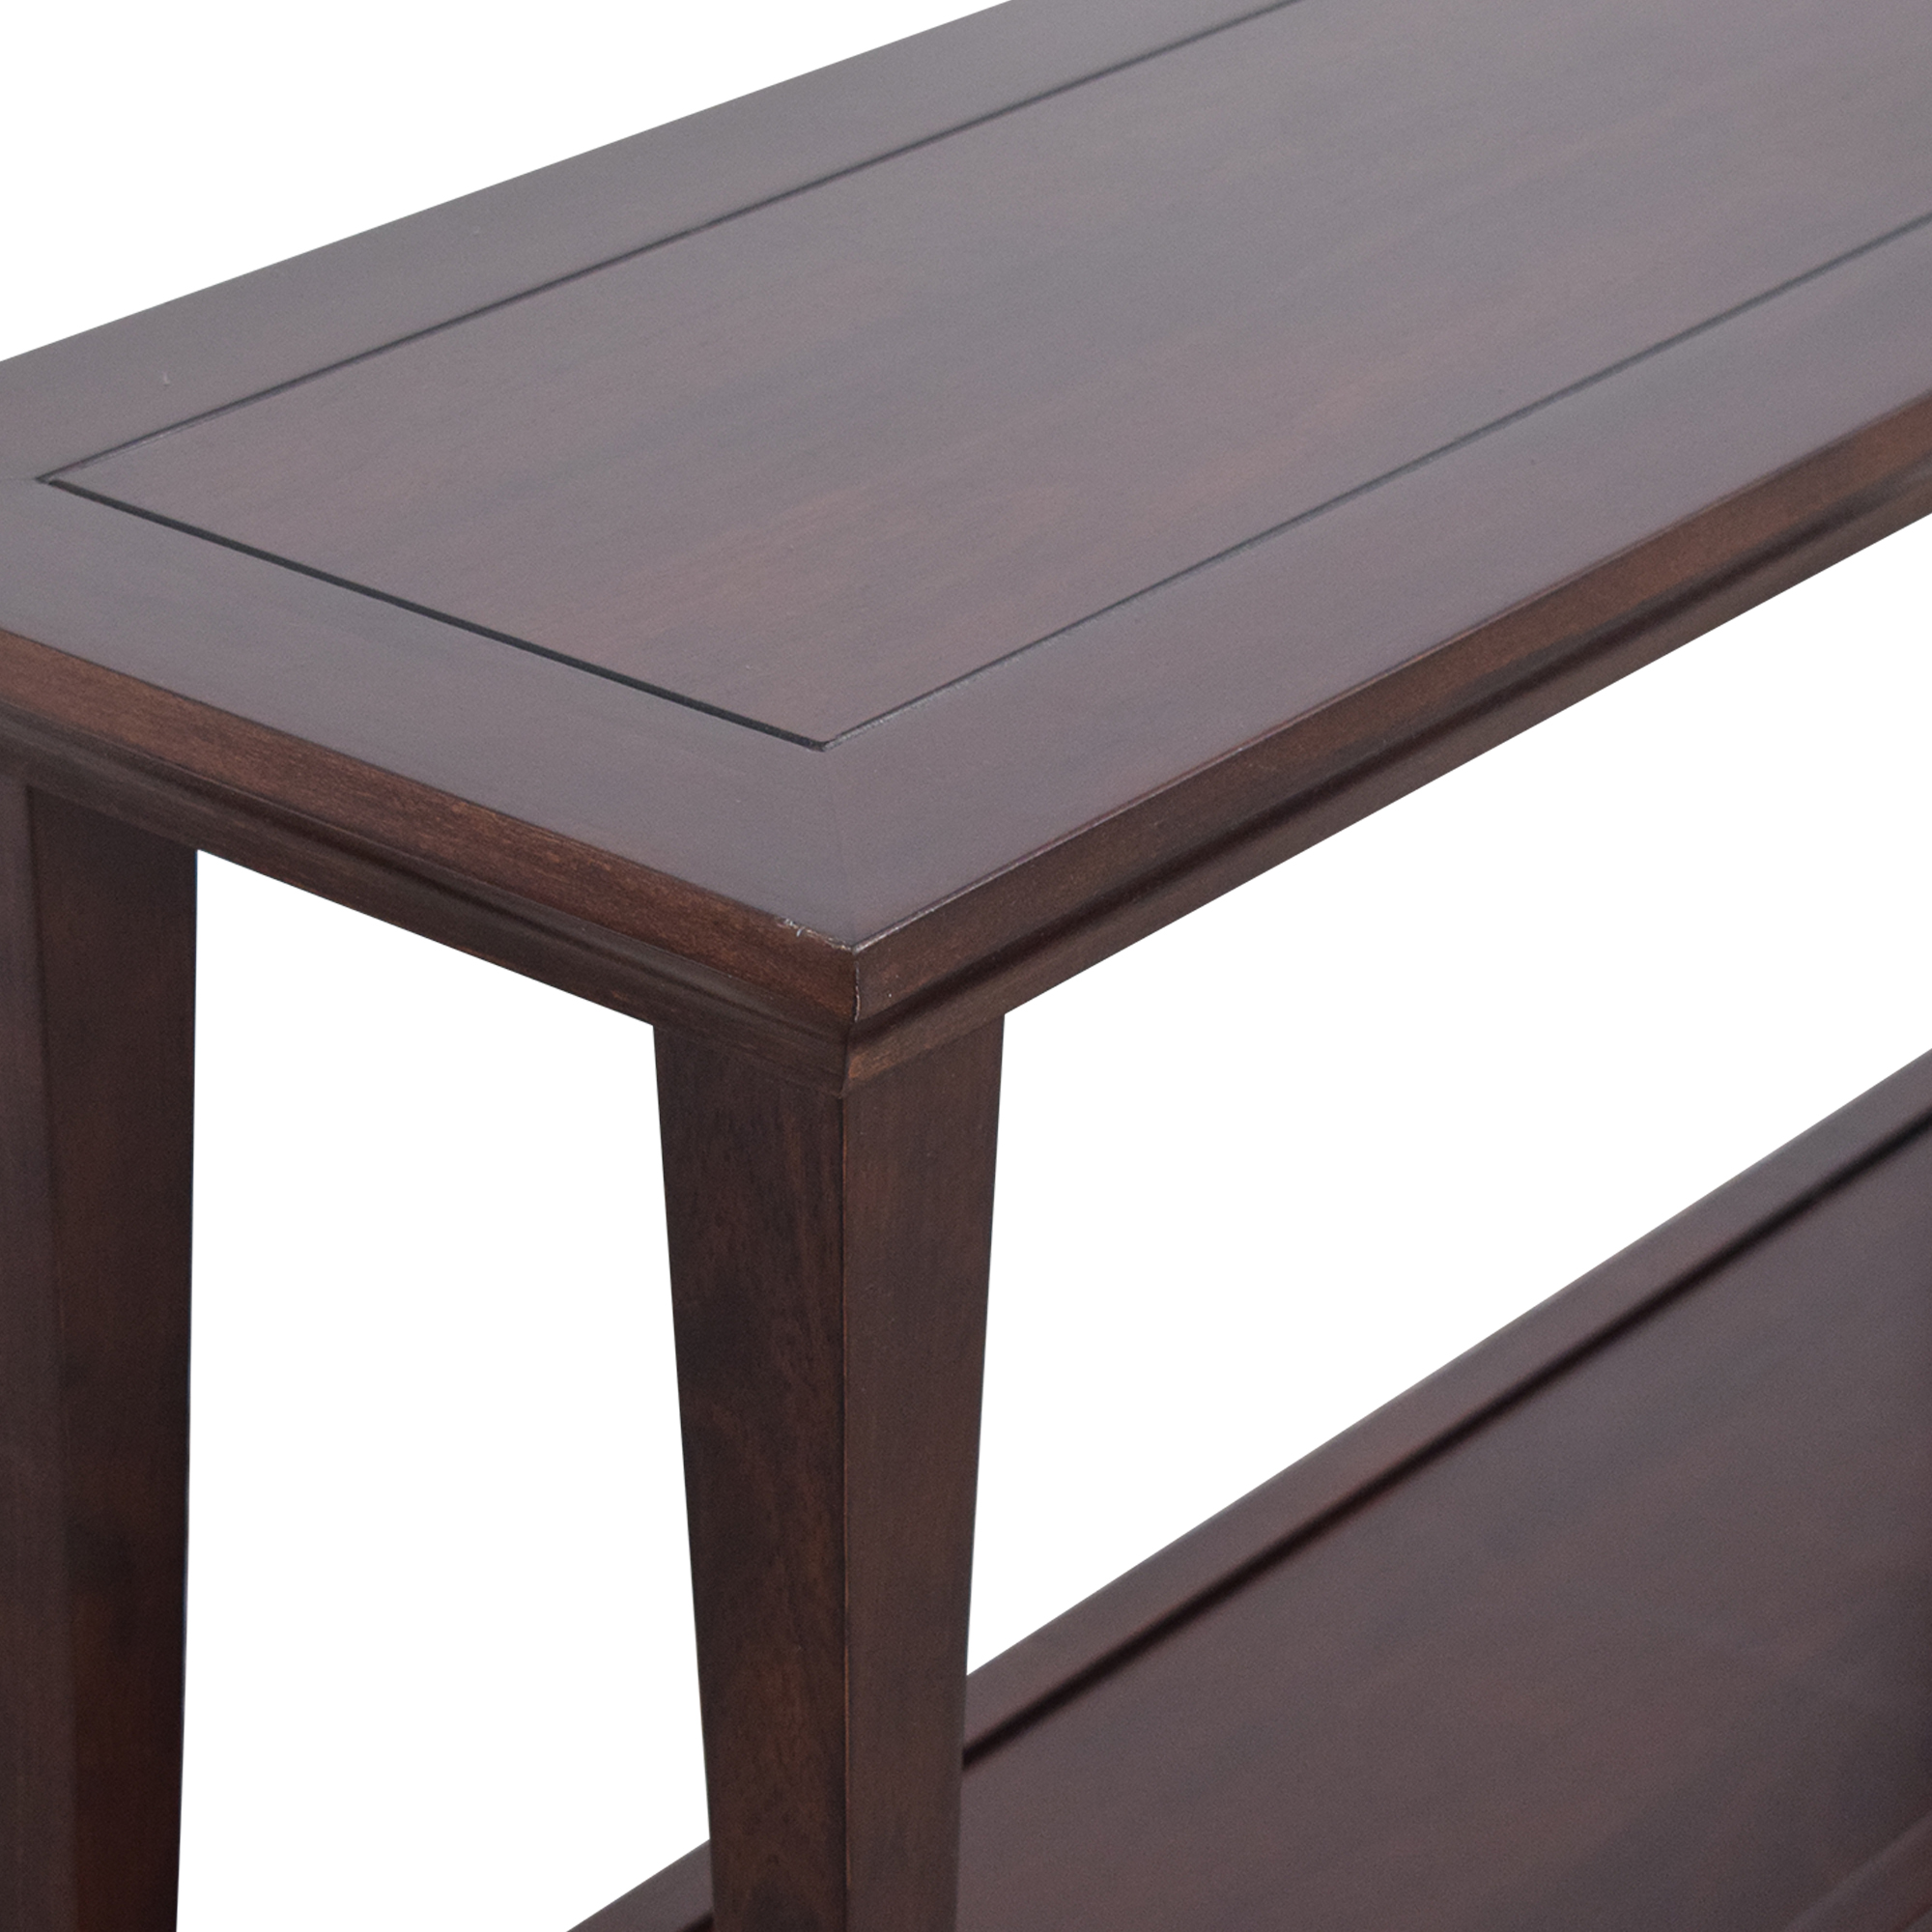 Pottery Barn Two Level Console Table sale